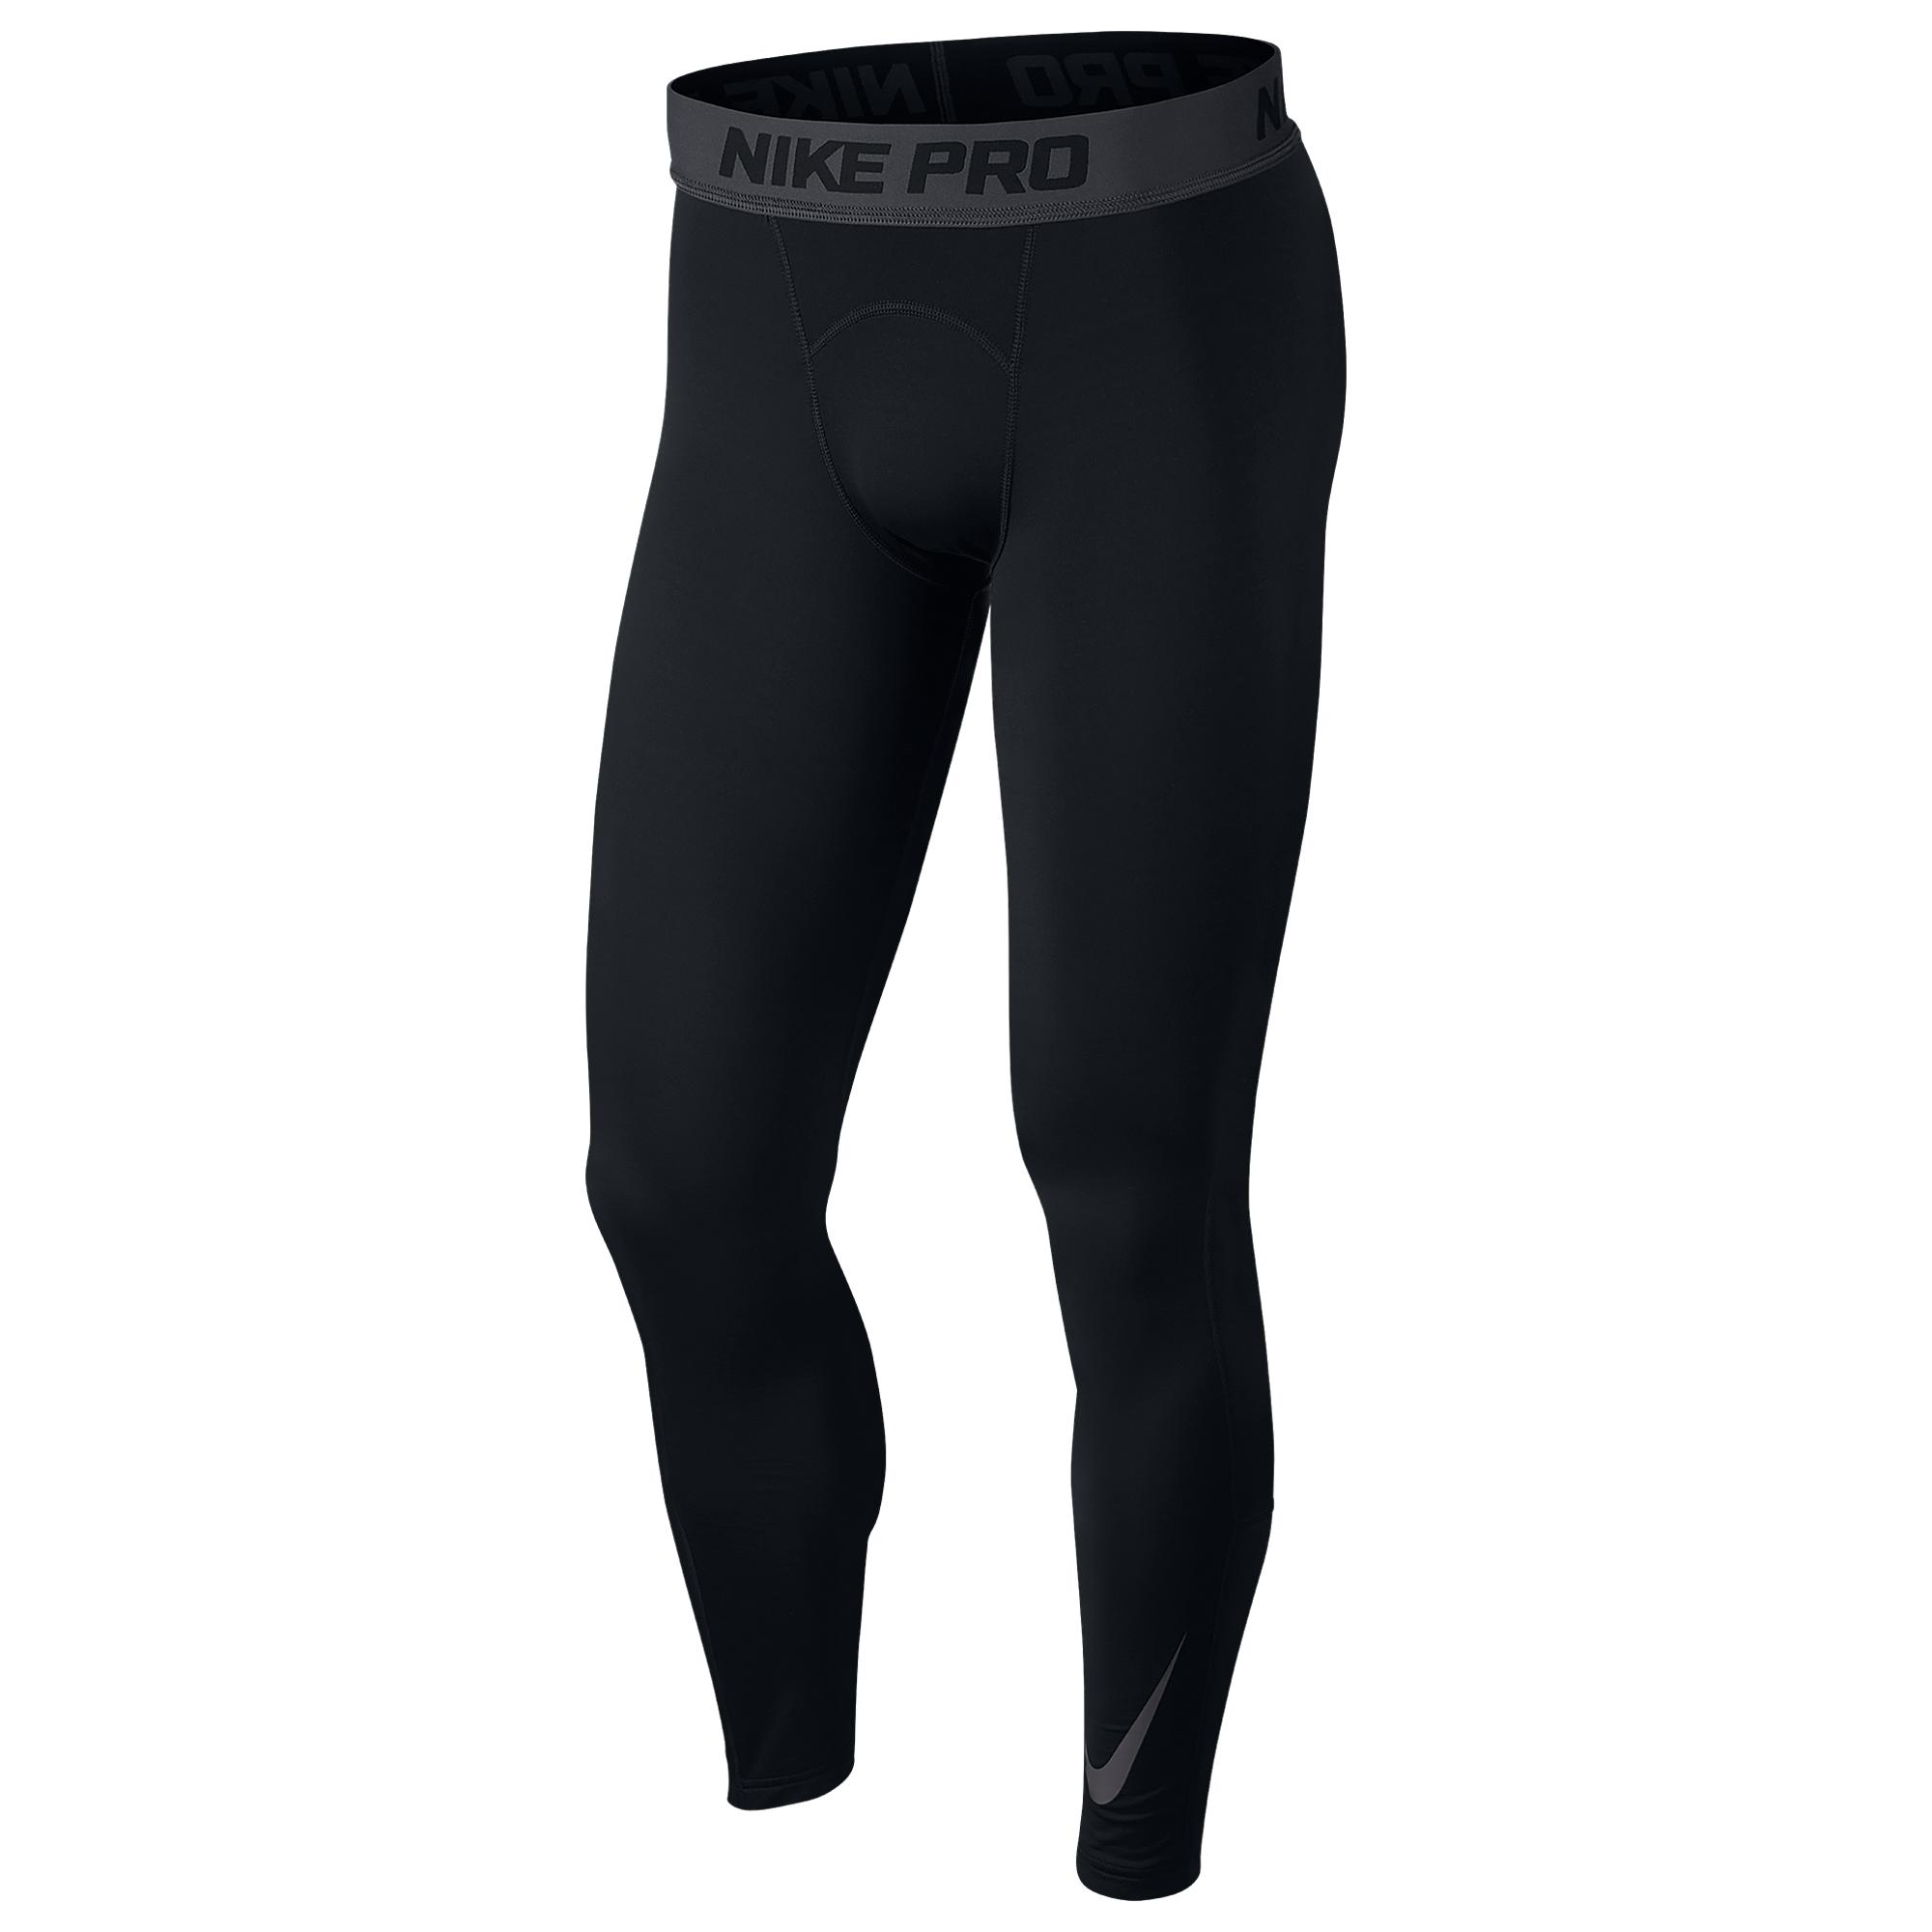 1f7d82a427189 Nike - Black Pro Therma Tights for Men - Lyst. View fullscreen